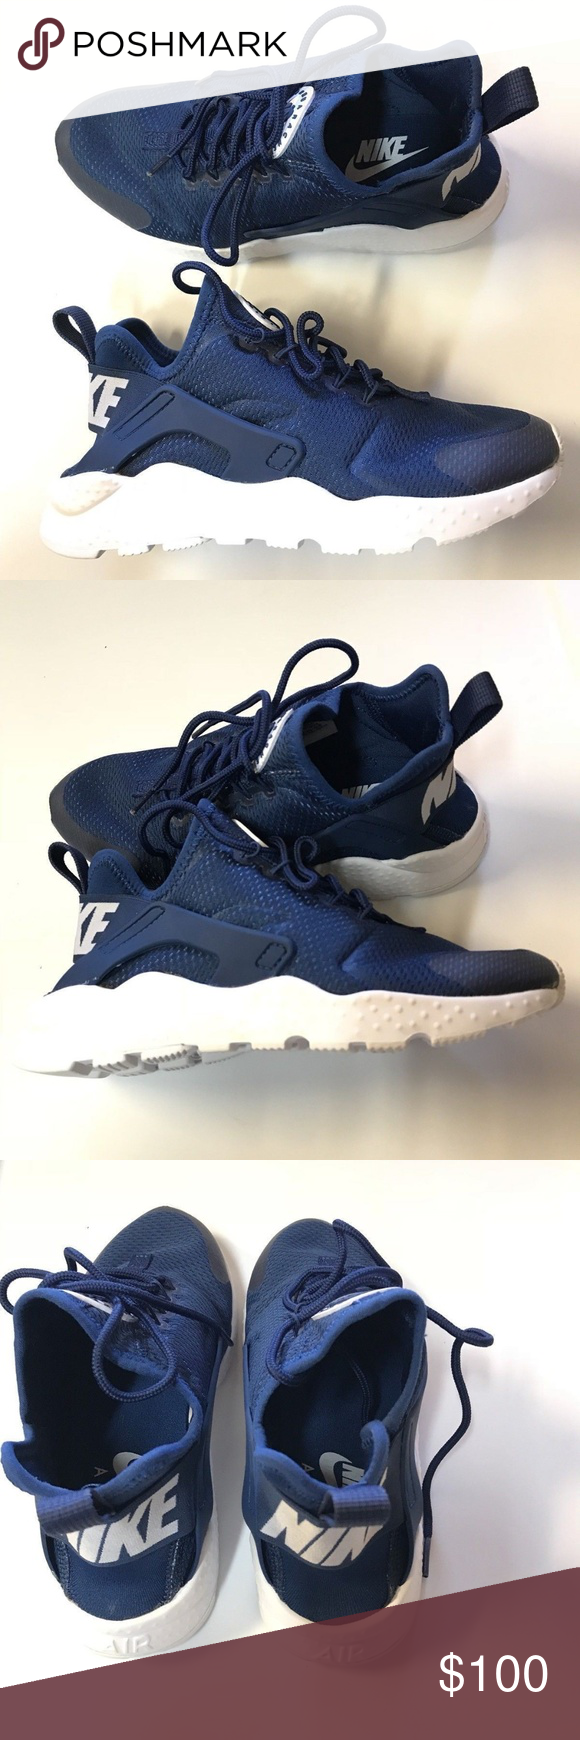 latest discount shopping genuine shoes Nike Air Huarache Run Ultra Coastal Blue White 5 Nike Air Huarache ...